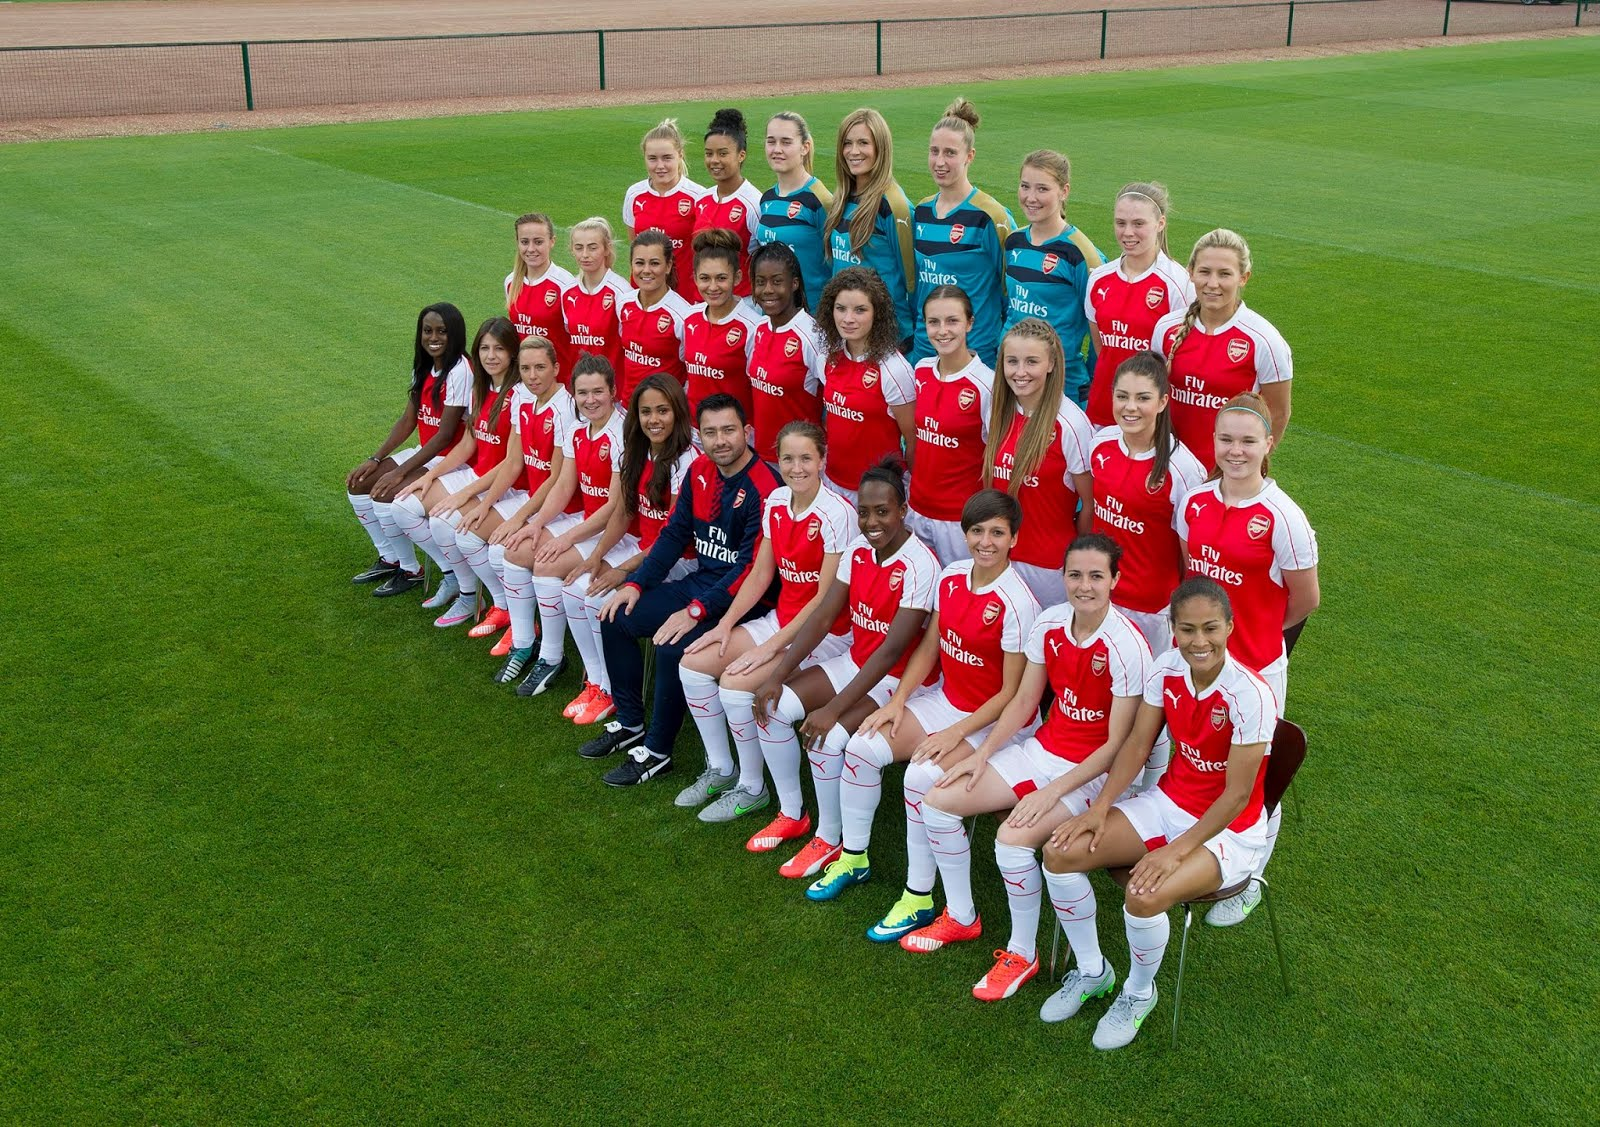 Arsenal Ladies 2015/16 Team